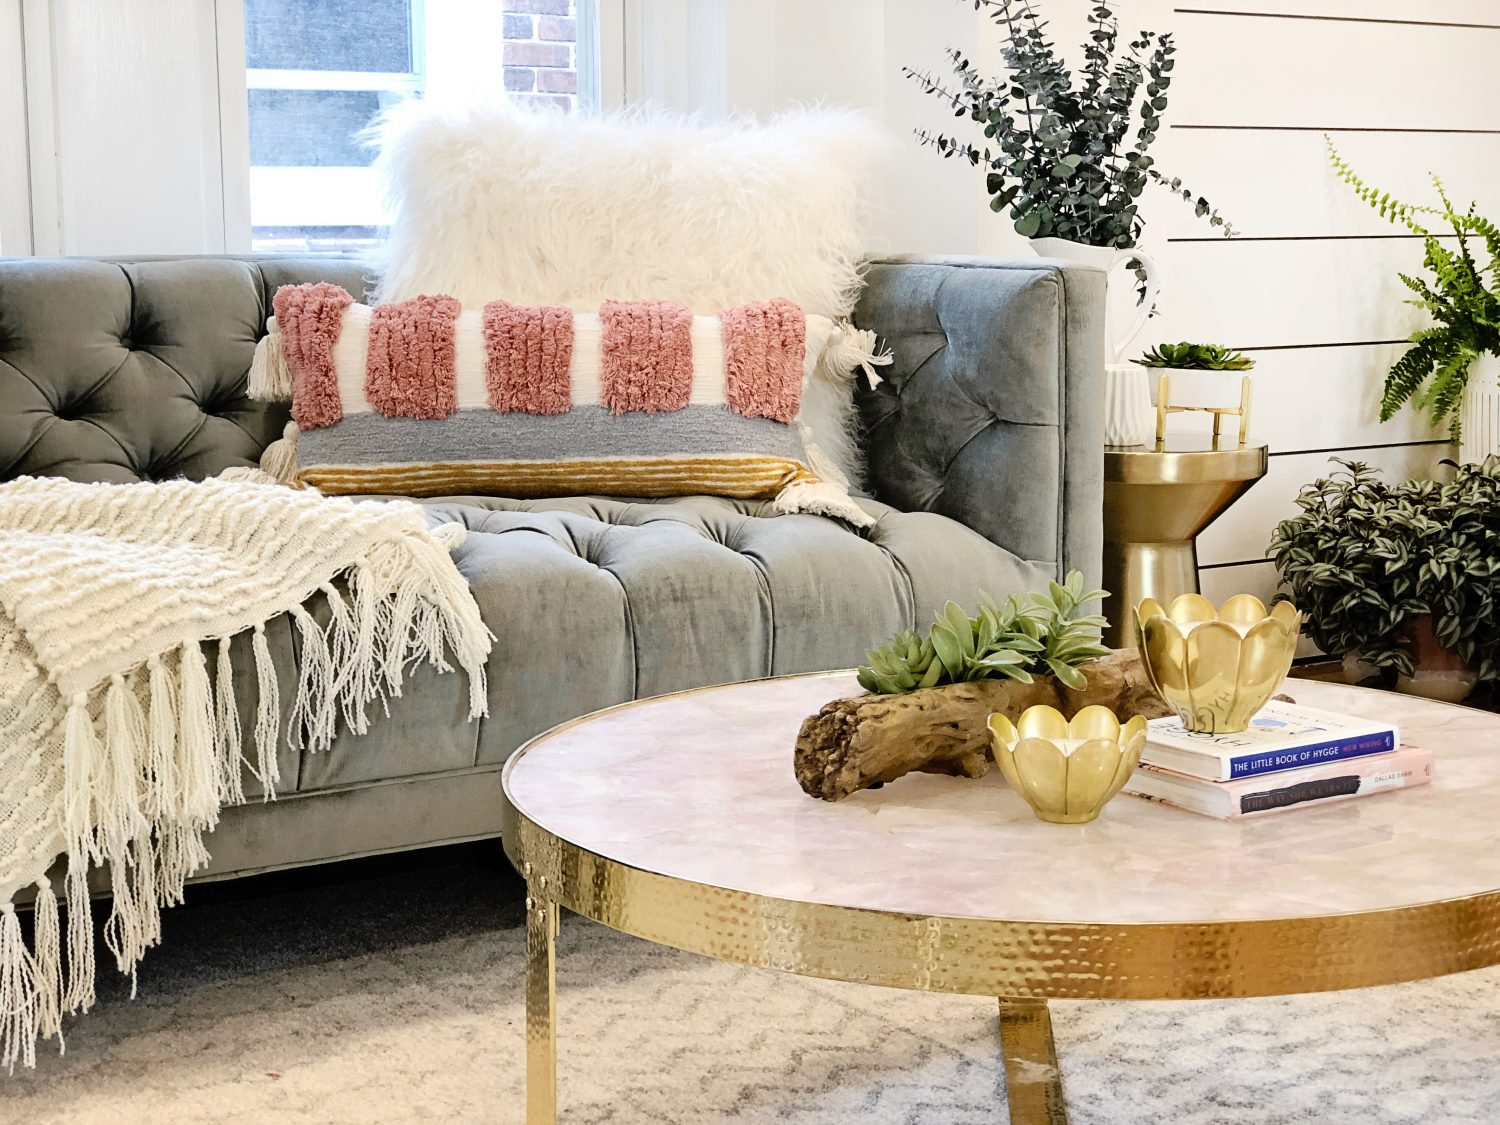 The motherchic living room decor